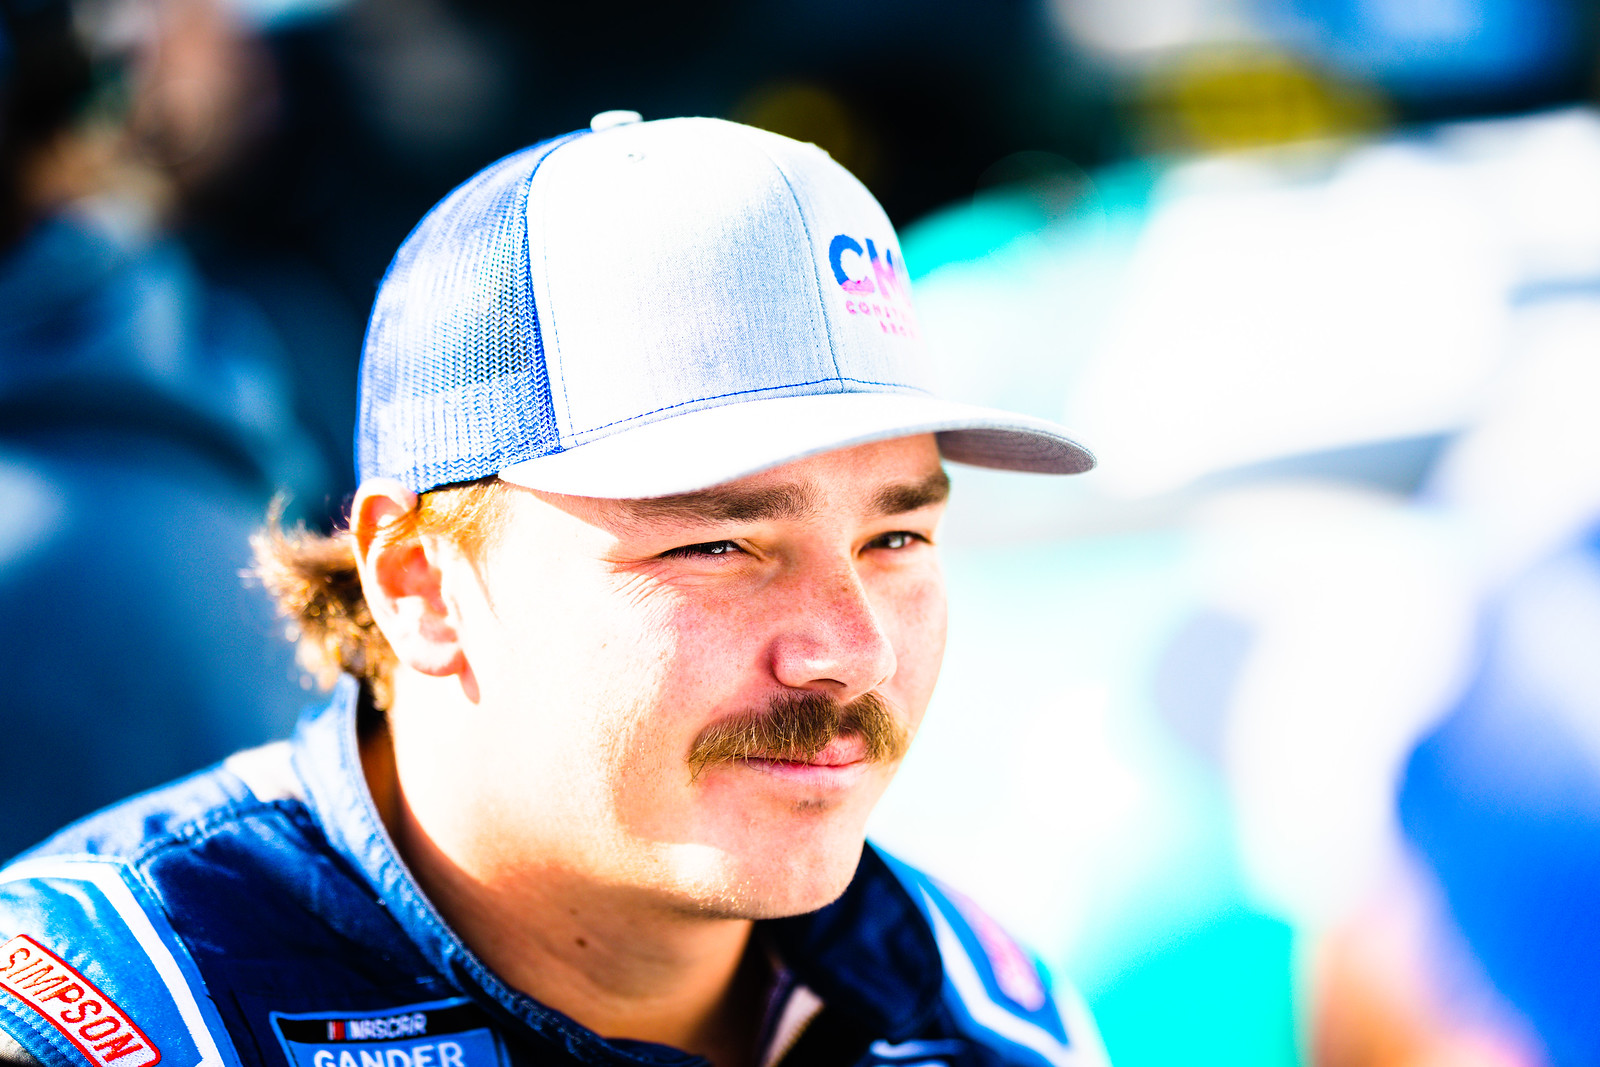 Moffitt Returning to GMS Racing for 2020 Season